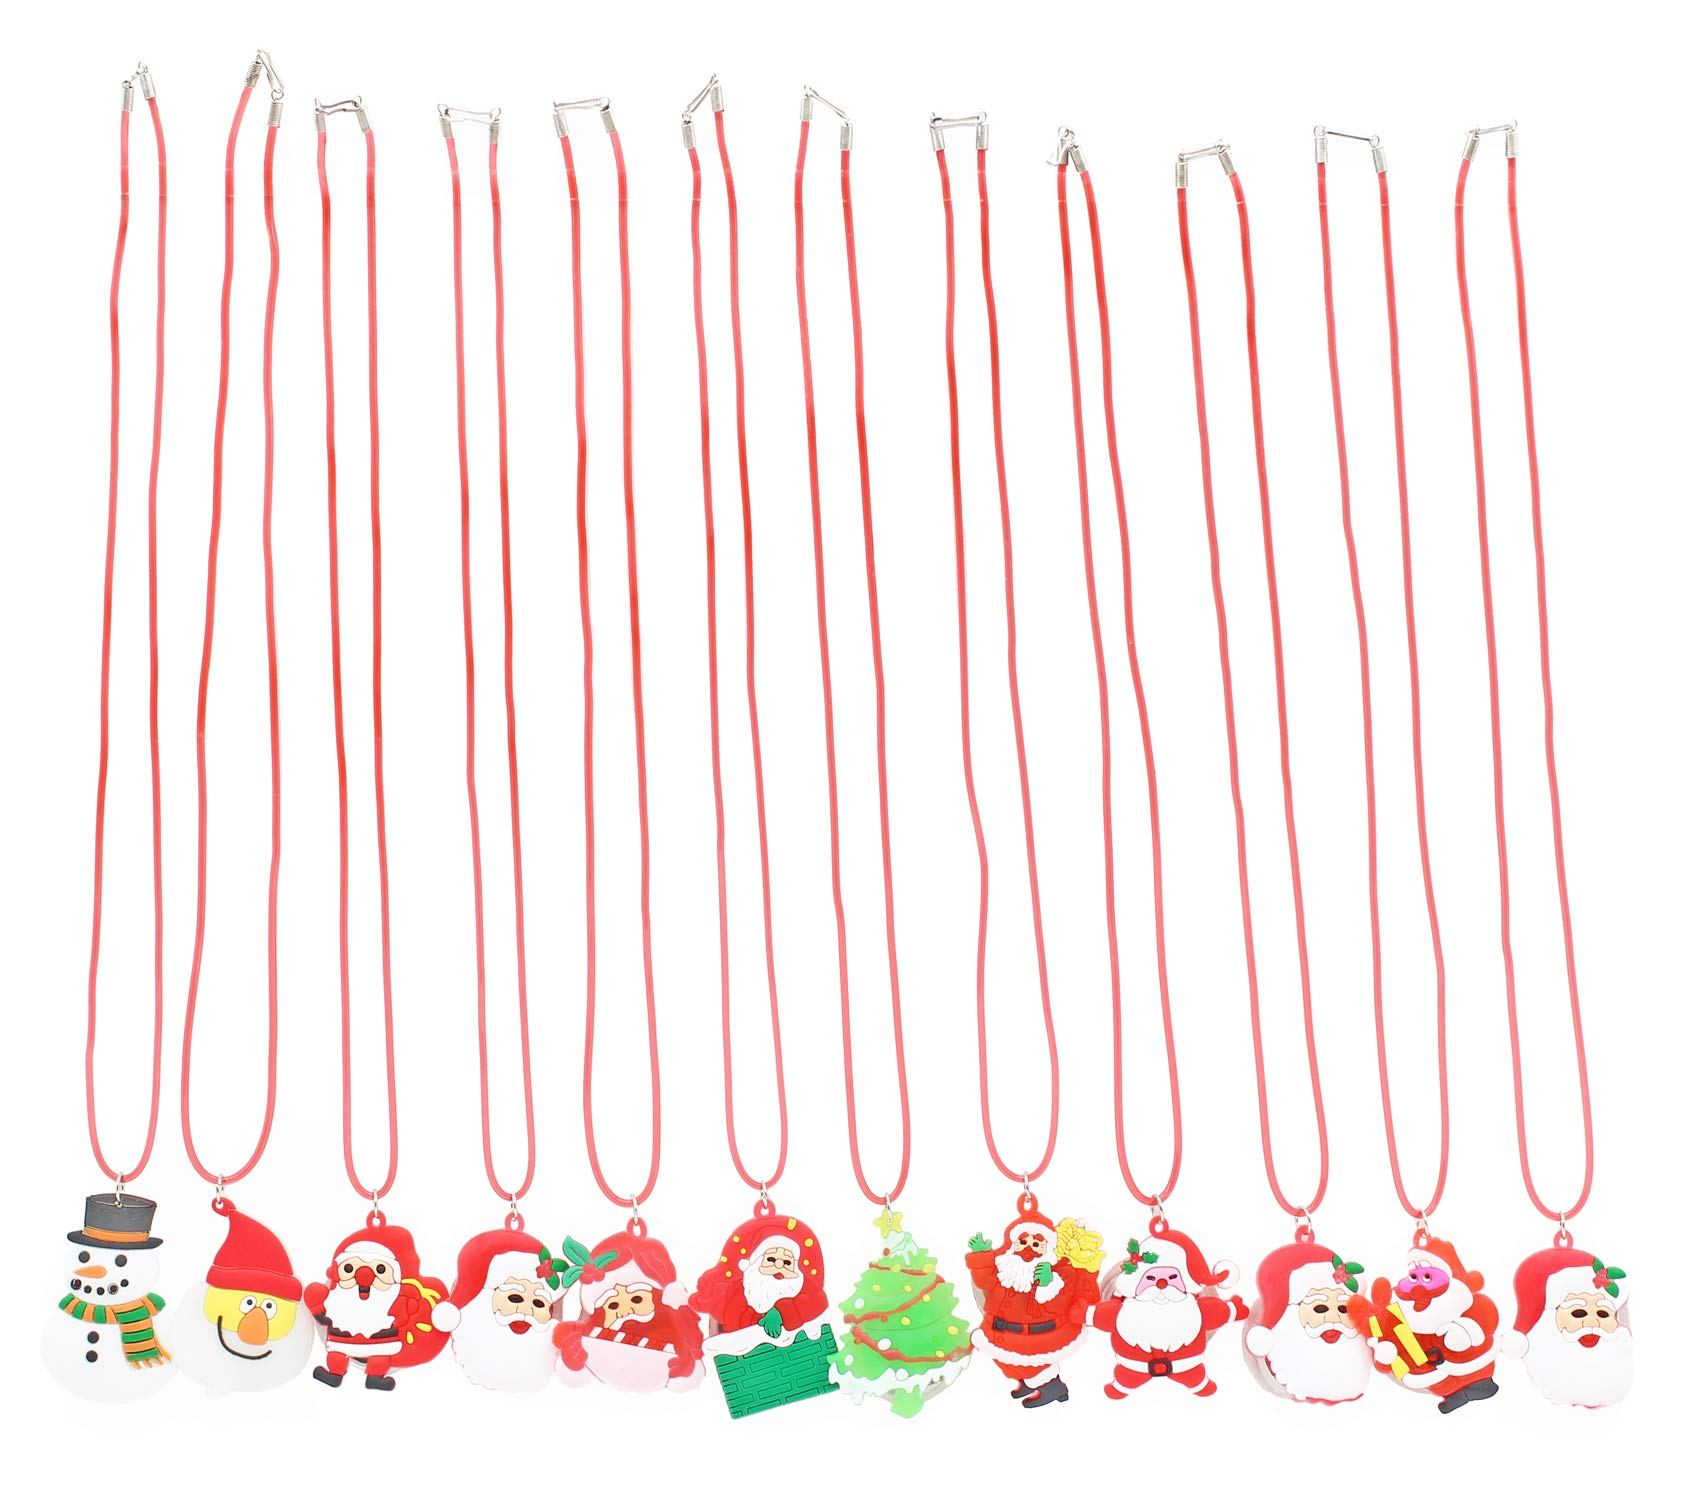 San Tokra 12 Pcs Light Up Christmas Necklace Lights, Holiday Flashing Light Necklace for Parties, Blinking LED Bulbs Santa Claus Christmas Tree Snowman Pendant, Xmas Necklace for Kids by San Tokra